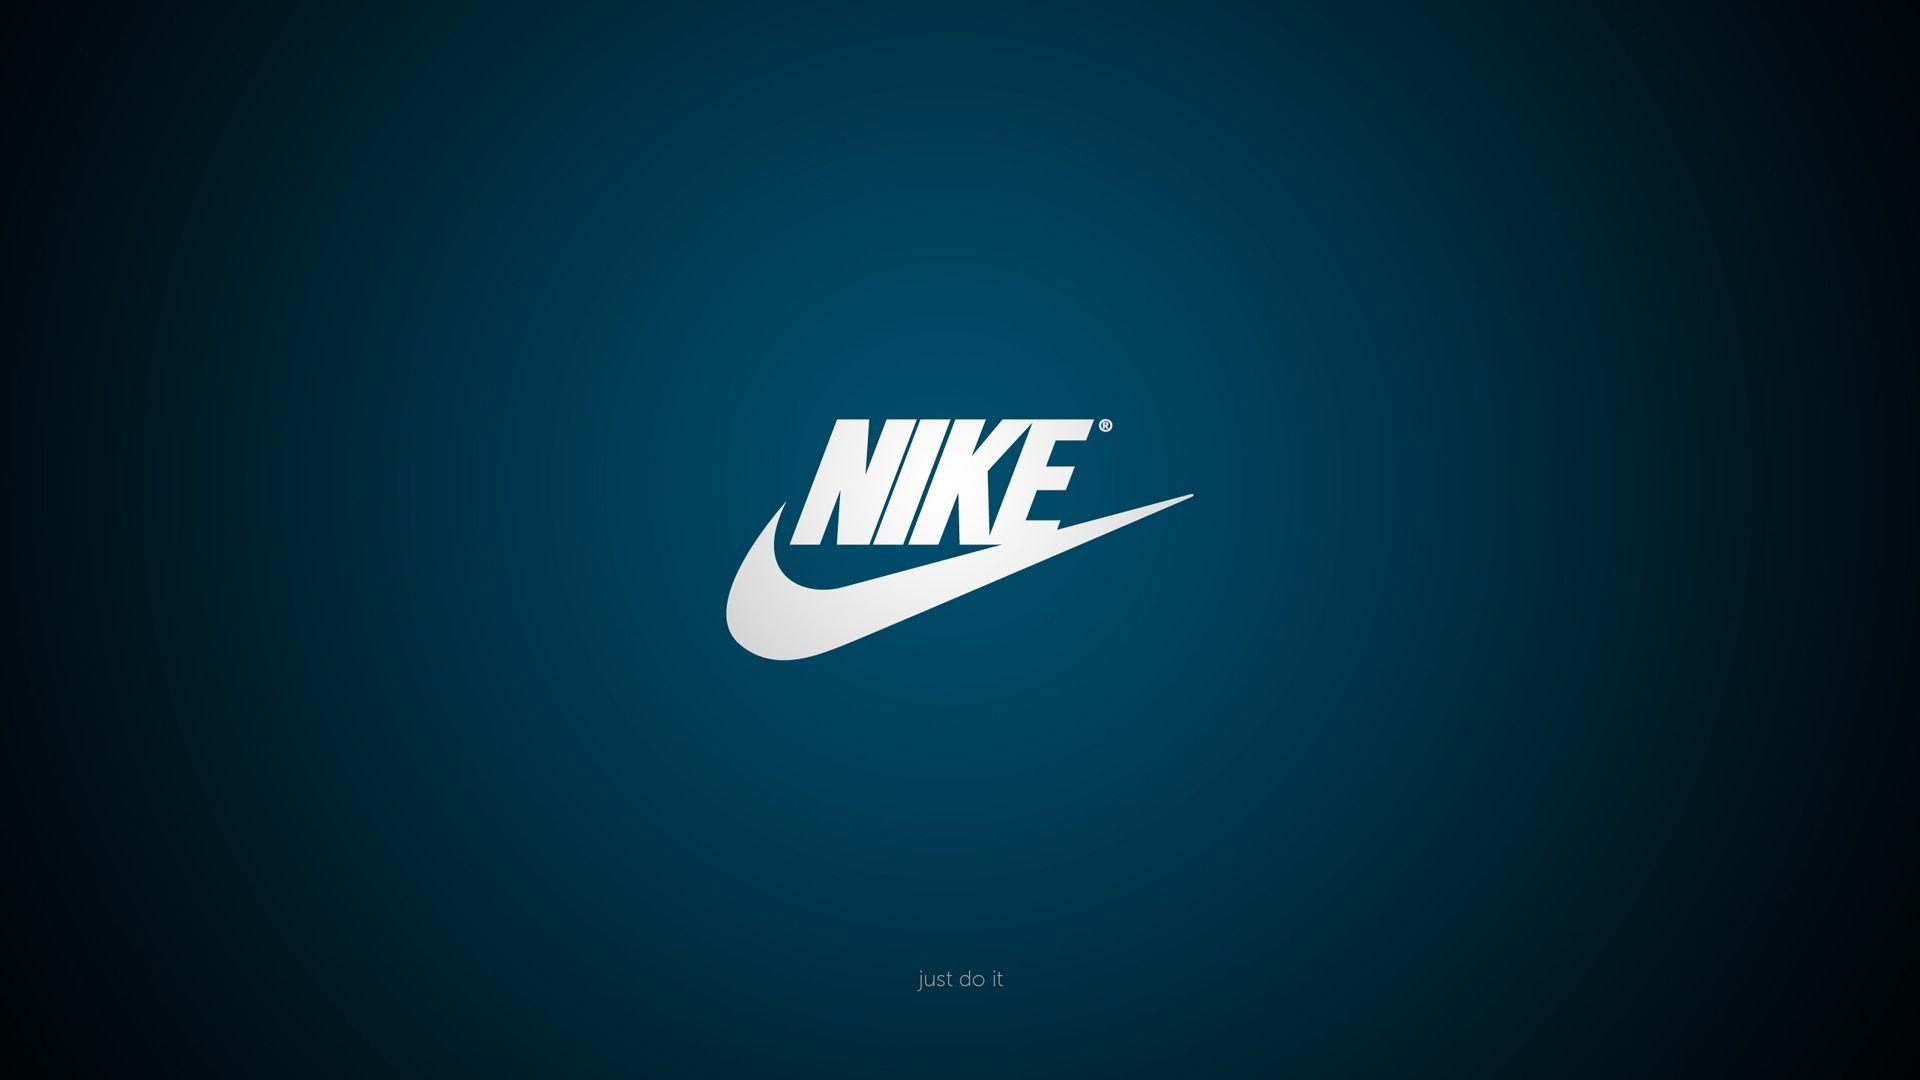 Image result for nike just do it wallpaper